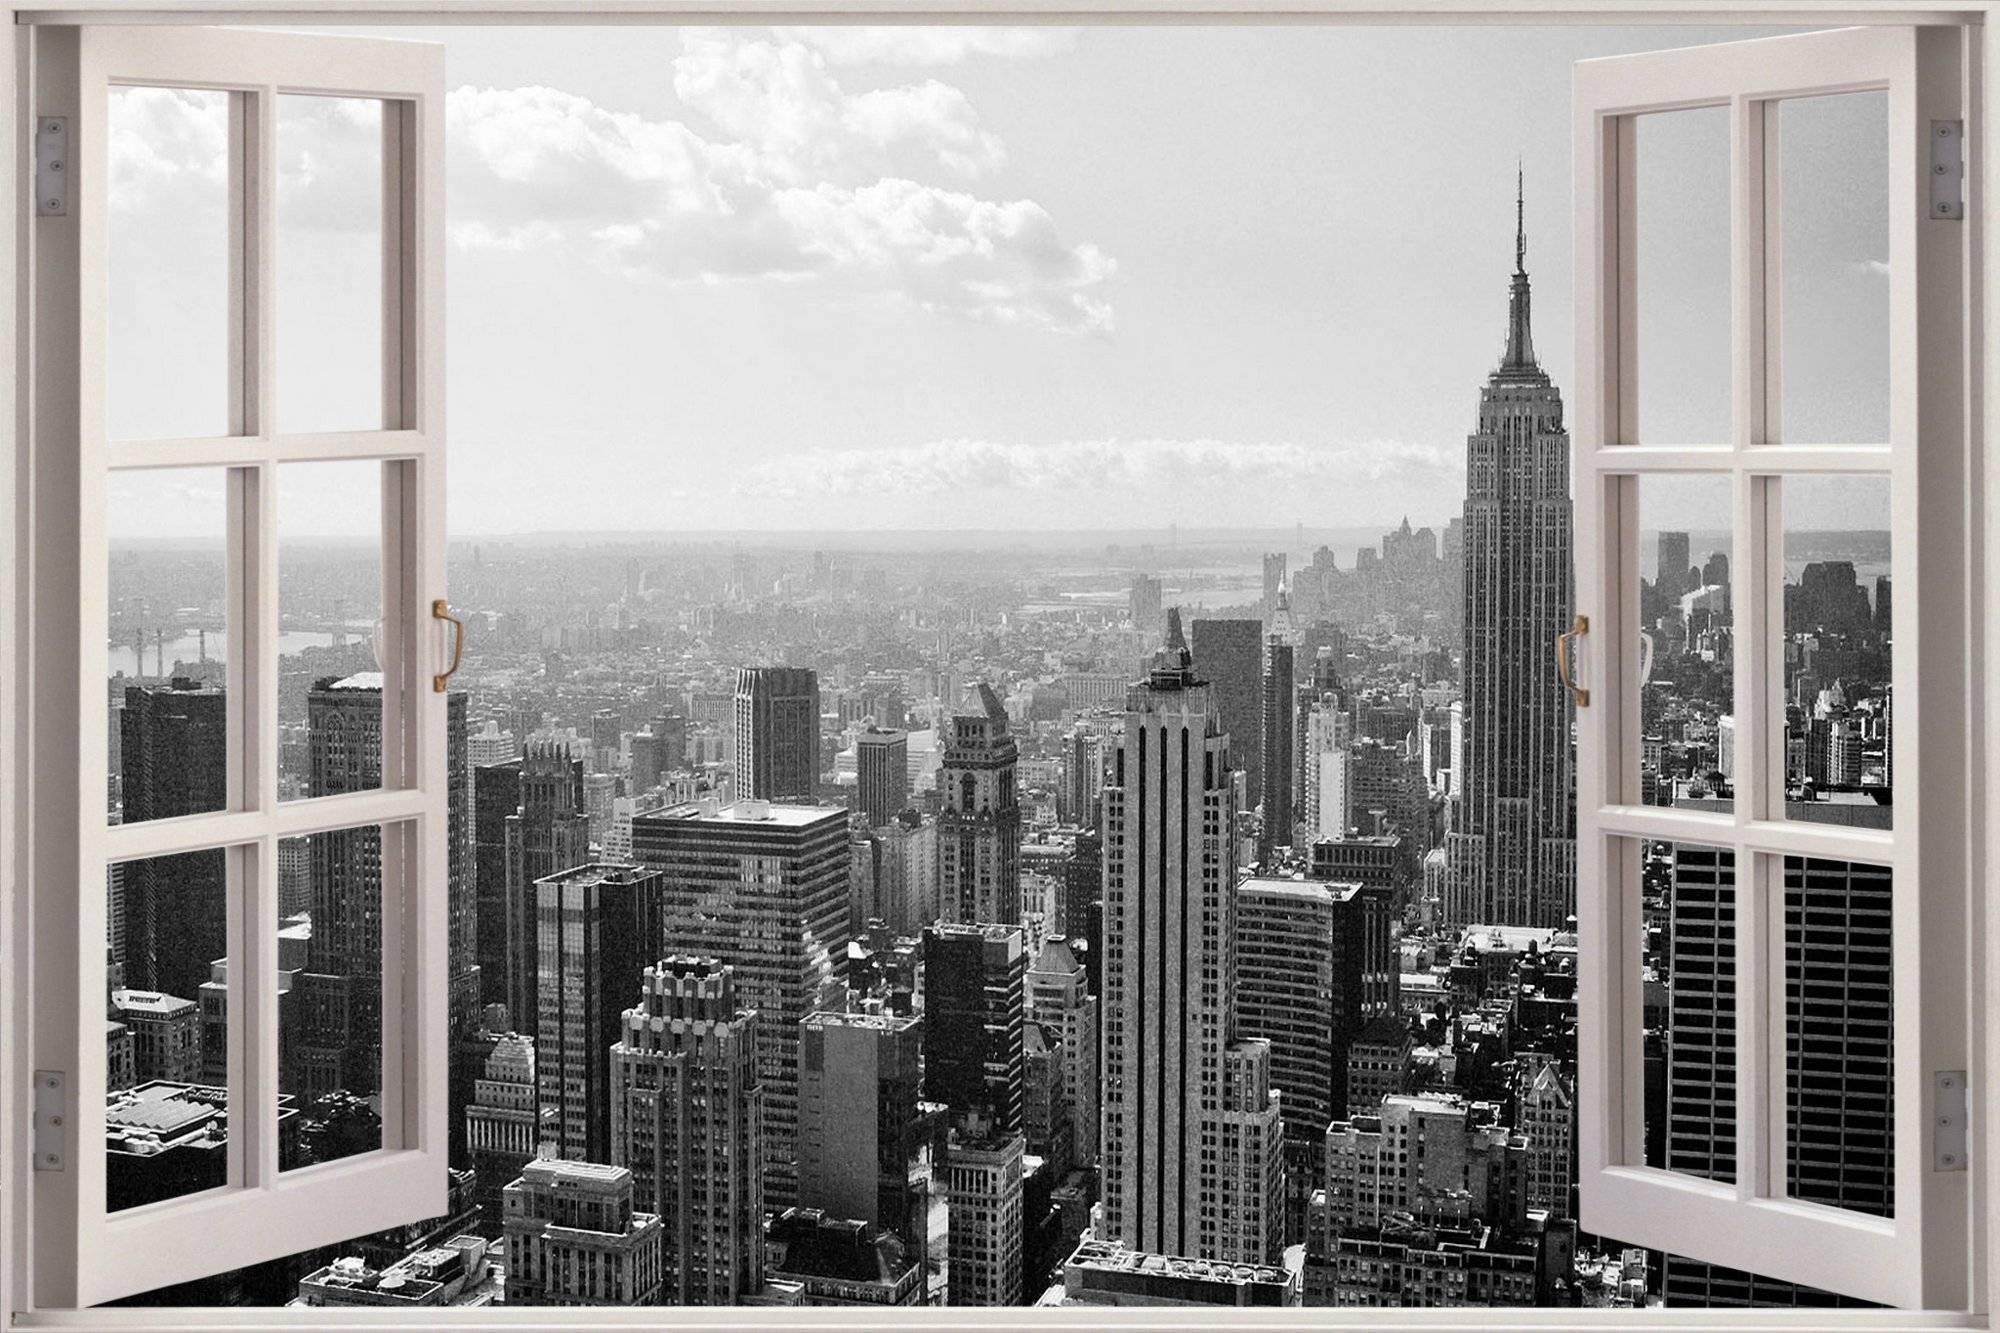 New York 3D Wall Art | Wallartideas Throughout Best And Newest New York 3D Wall Art (View 12 of 20)